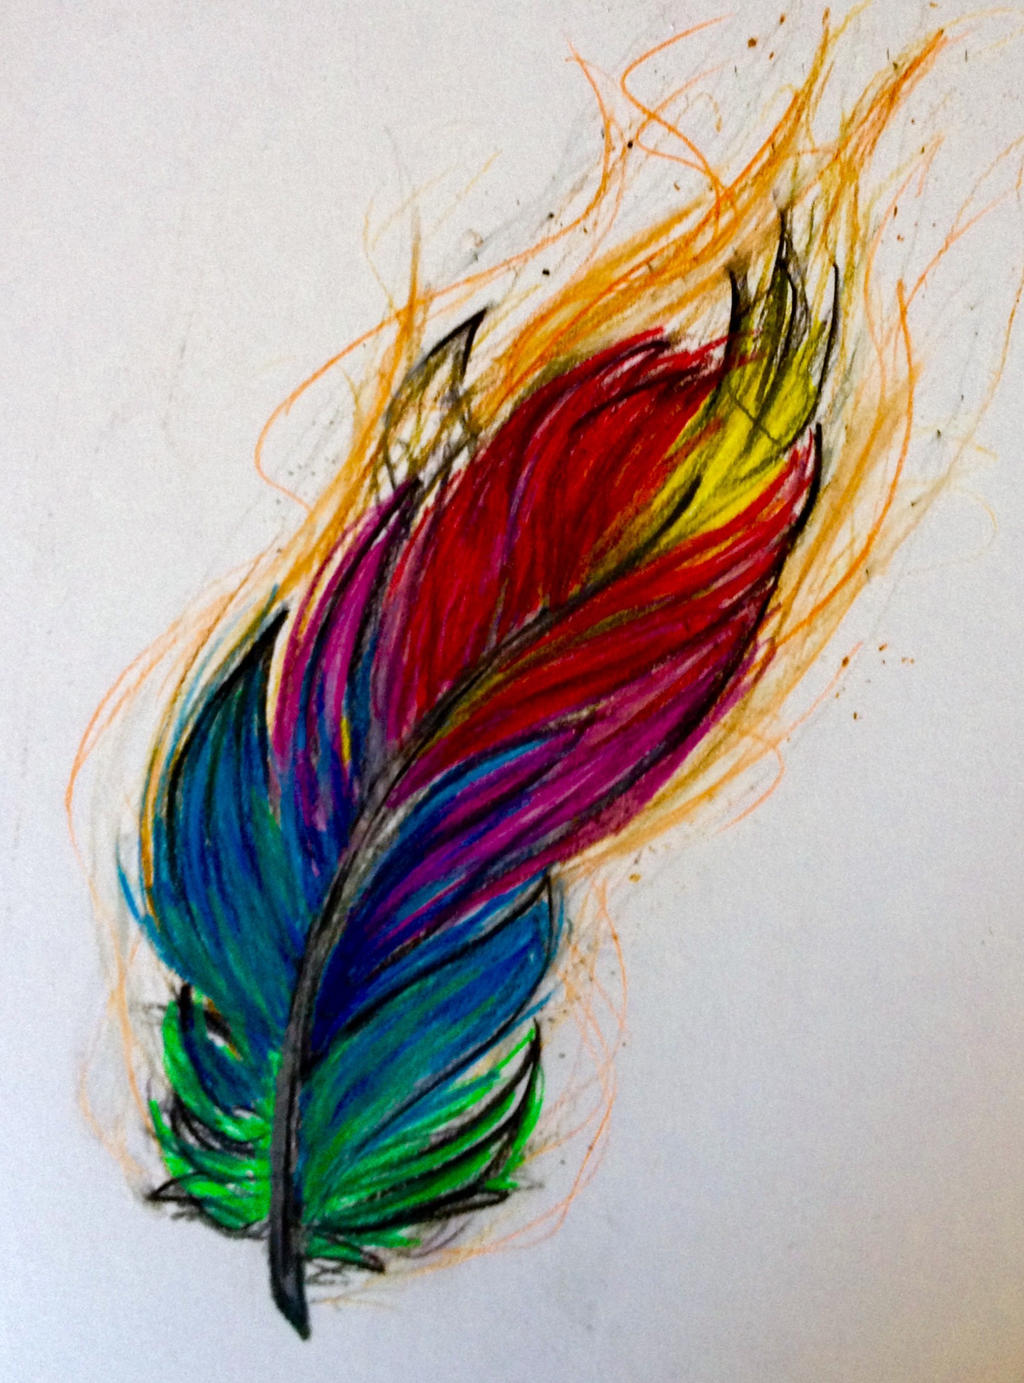 Colored Feather Flame By Xelitax On Deviantart